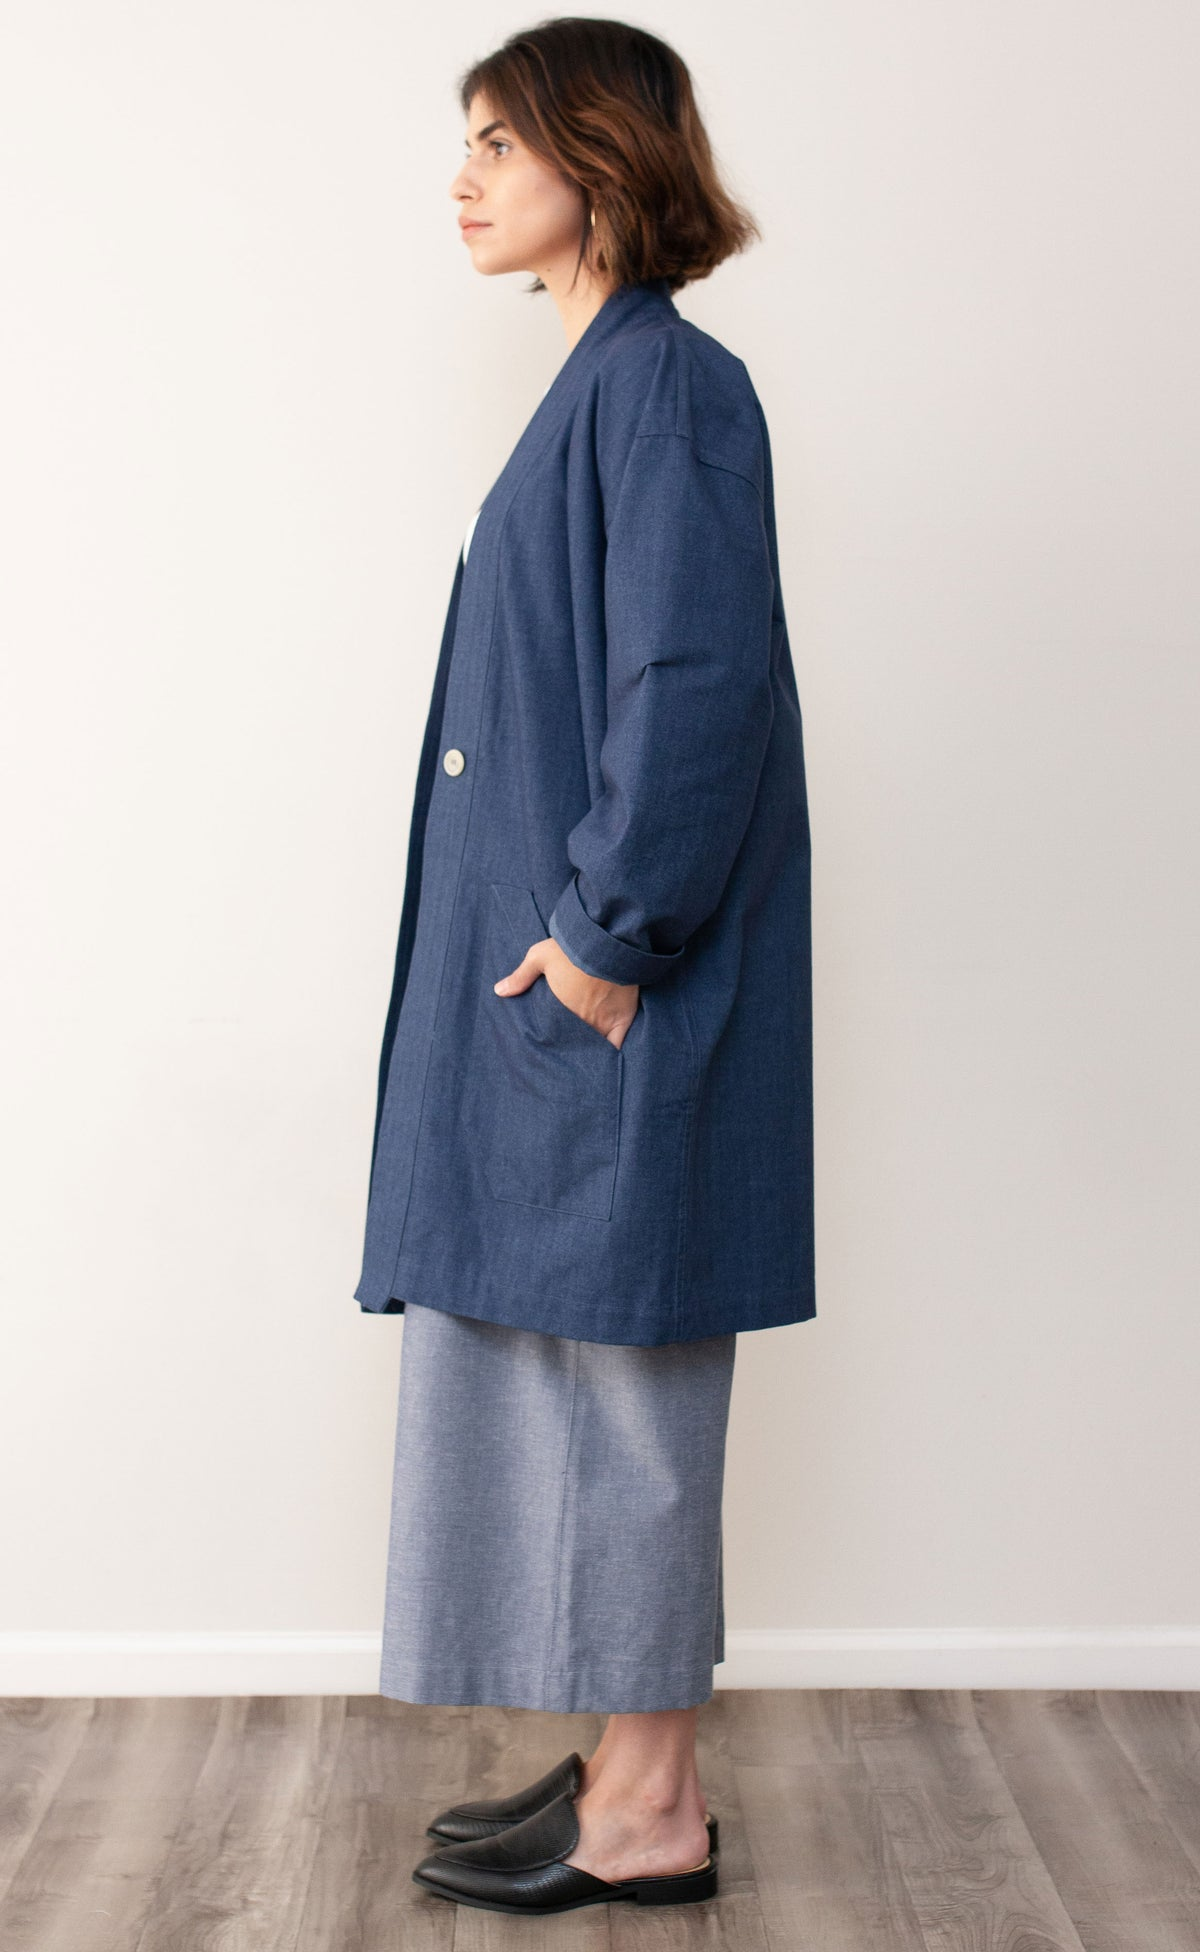 The Creative - Long Sleeve Duster Coat